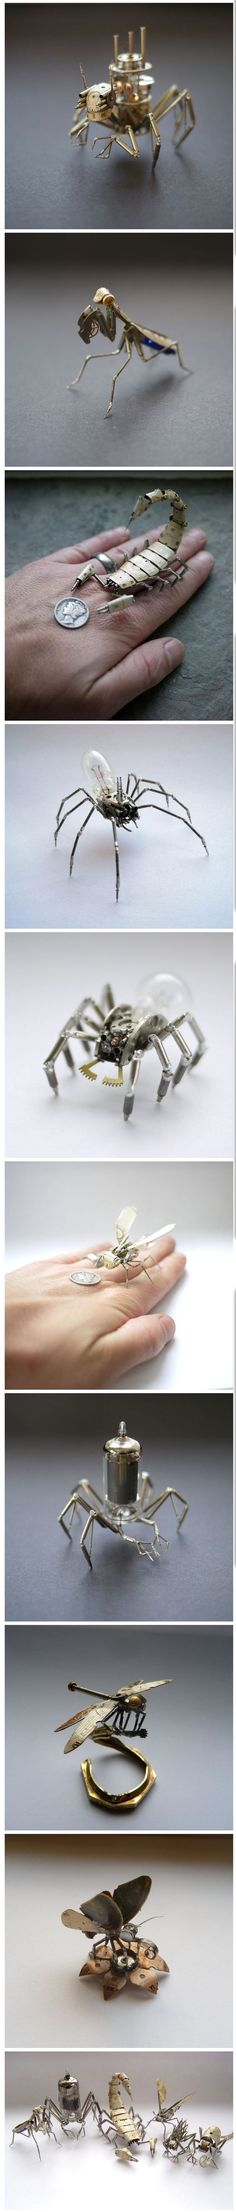 Tiny mechanical insects made of watch parts, by artist Justin Gershenson-Gates